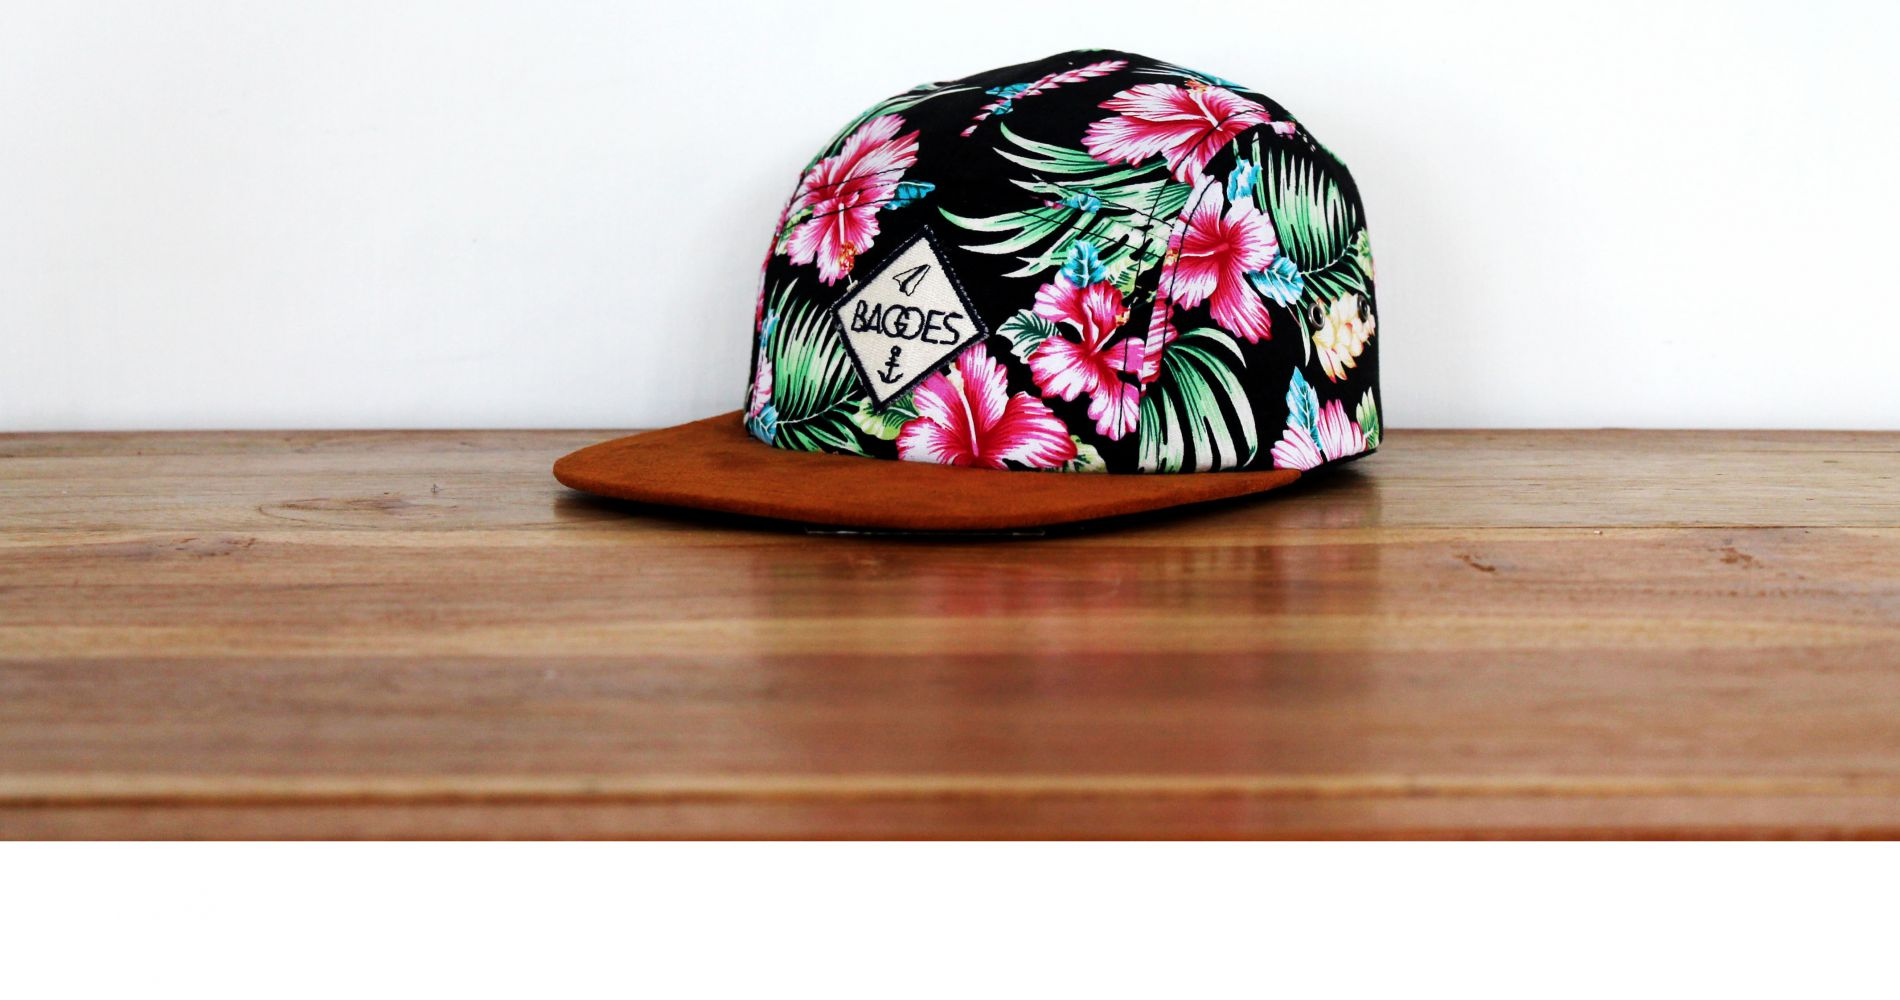 Bagoes, les casquettes cool made in Bali